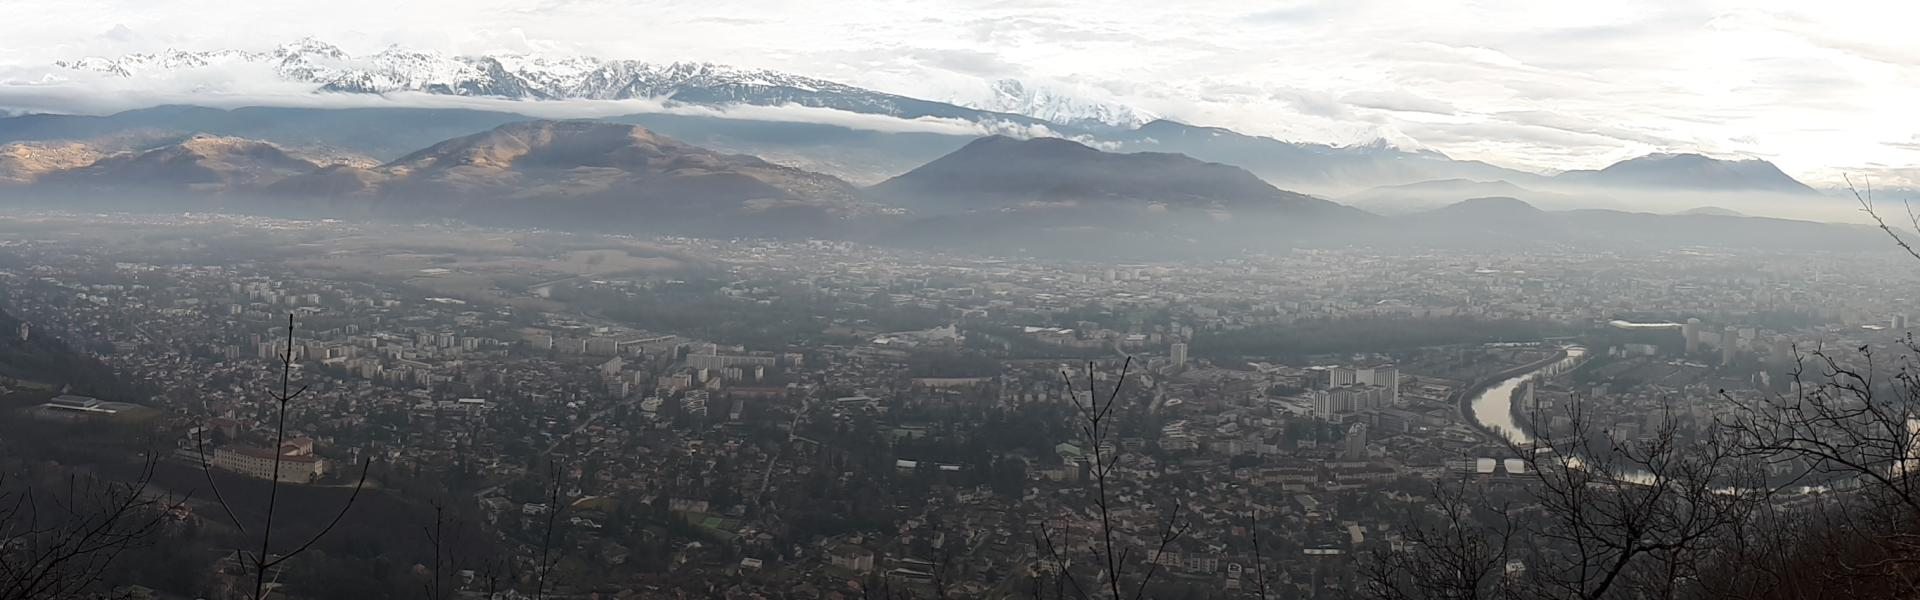 Temperature inversion over the city of Grenoble, which places pollutants on the ground.